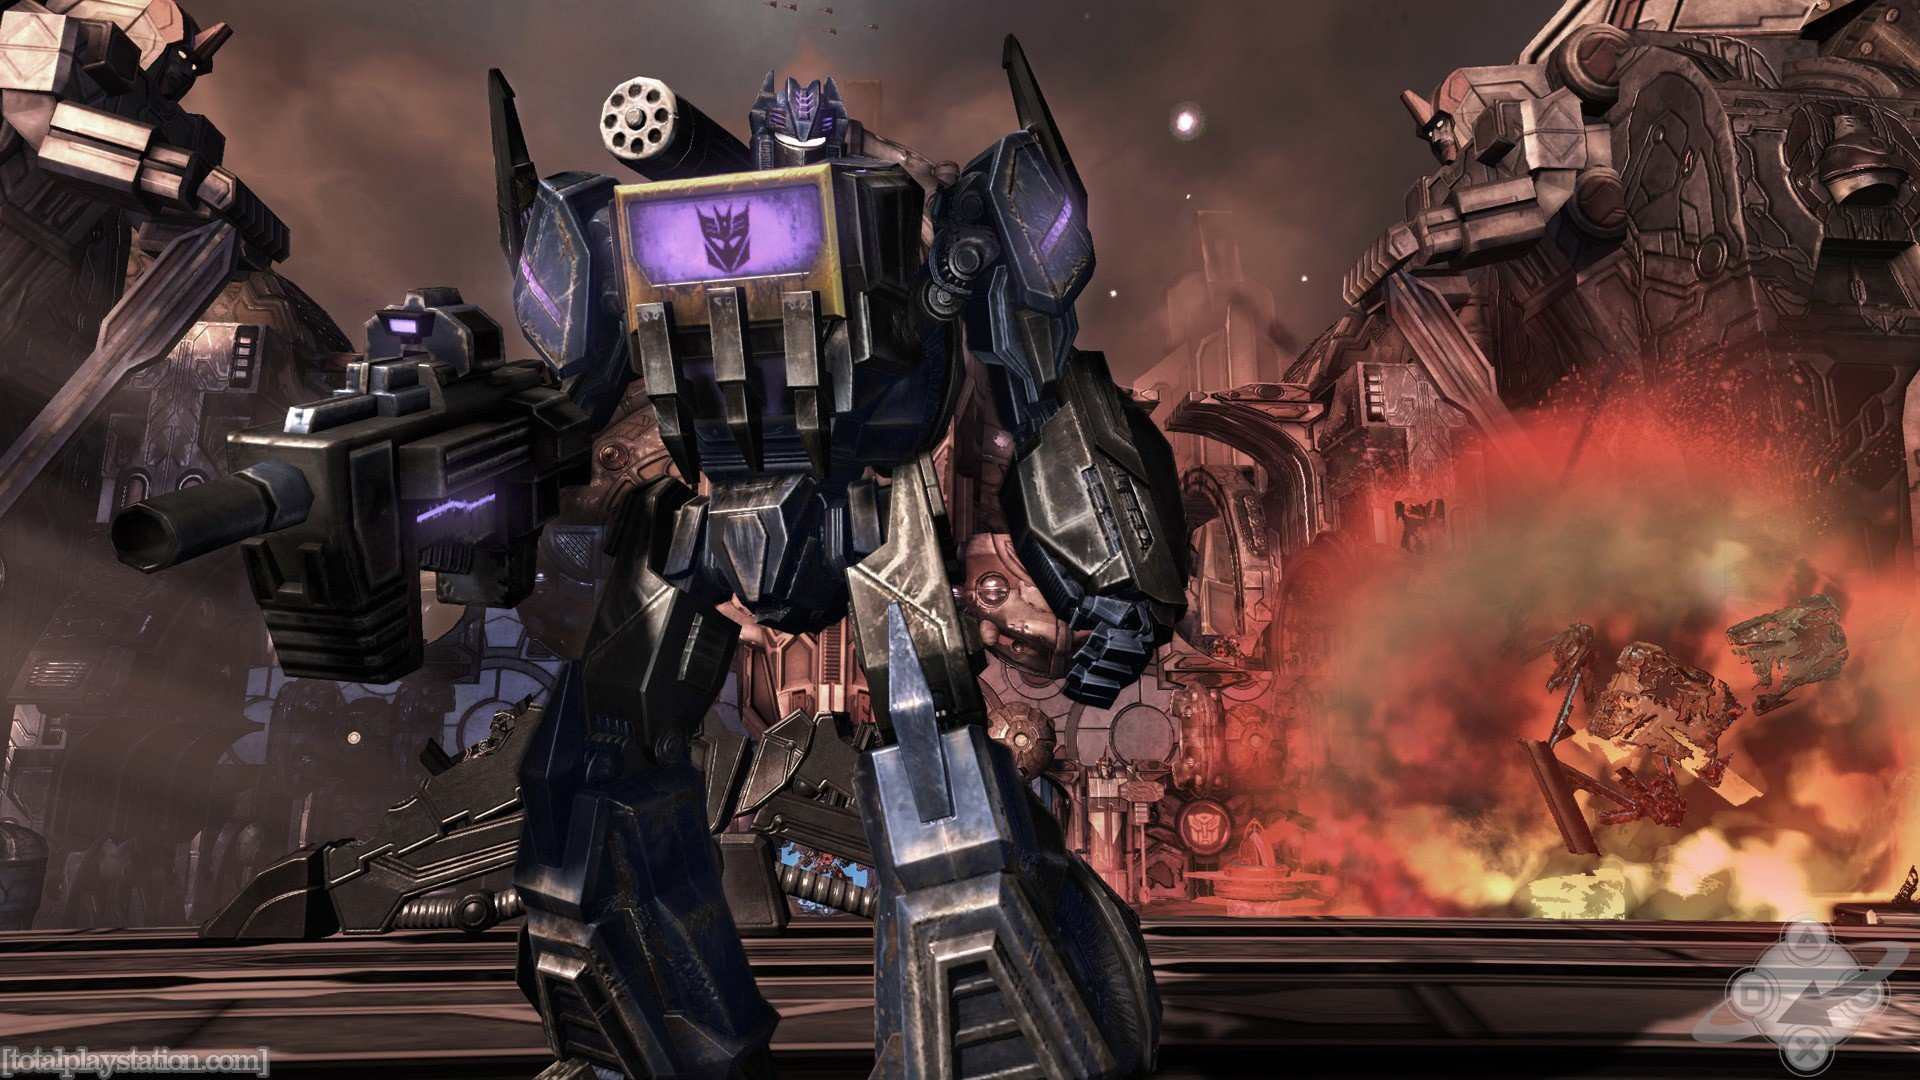 Transformers Fall Of Cybertron Hd Wallpapers 1080p Transformers Fall Of Cybertron Wallpapers 1920x1080 Full